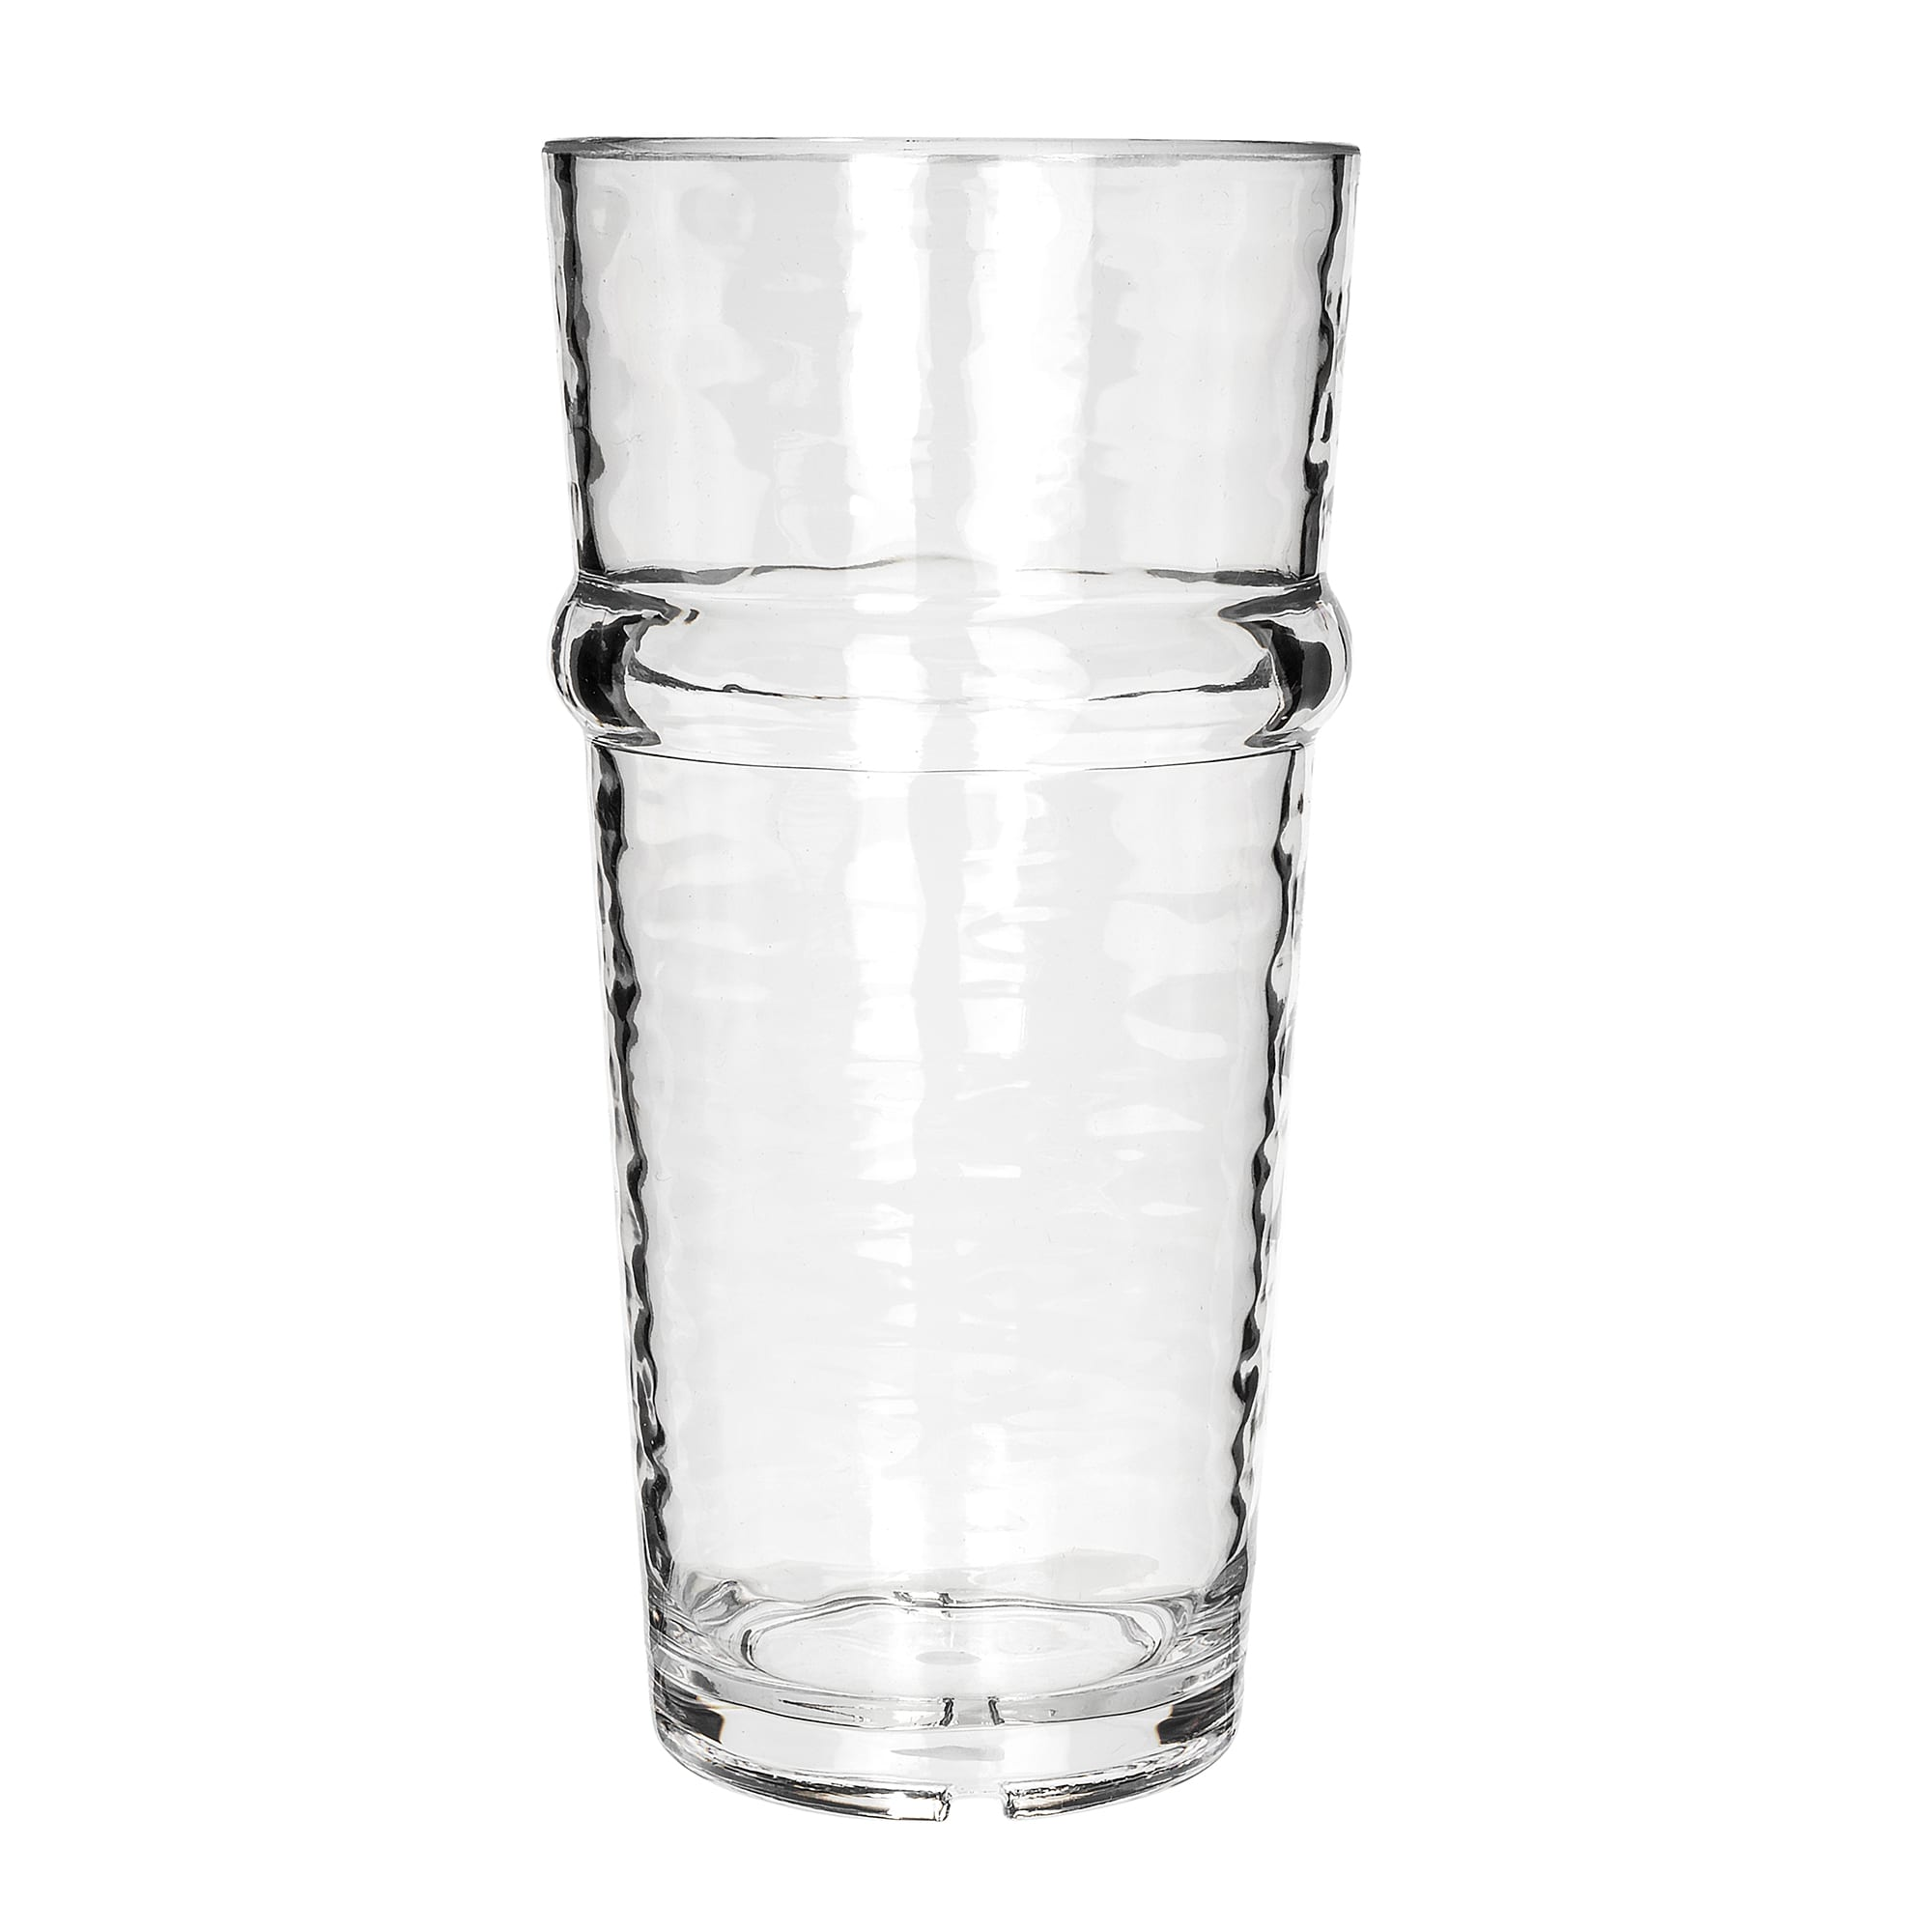 Libbey 92432 16-oz Cooler Glass, Wake™, Clear Plastic